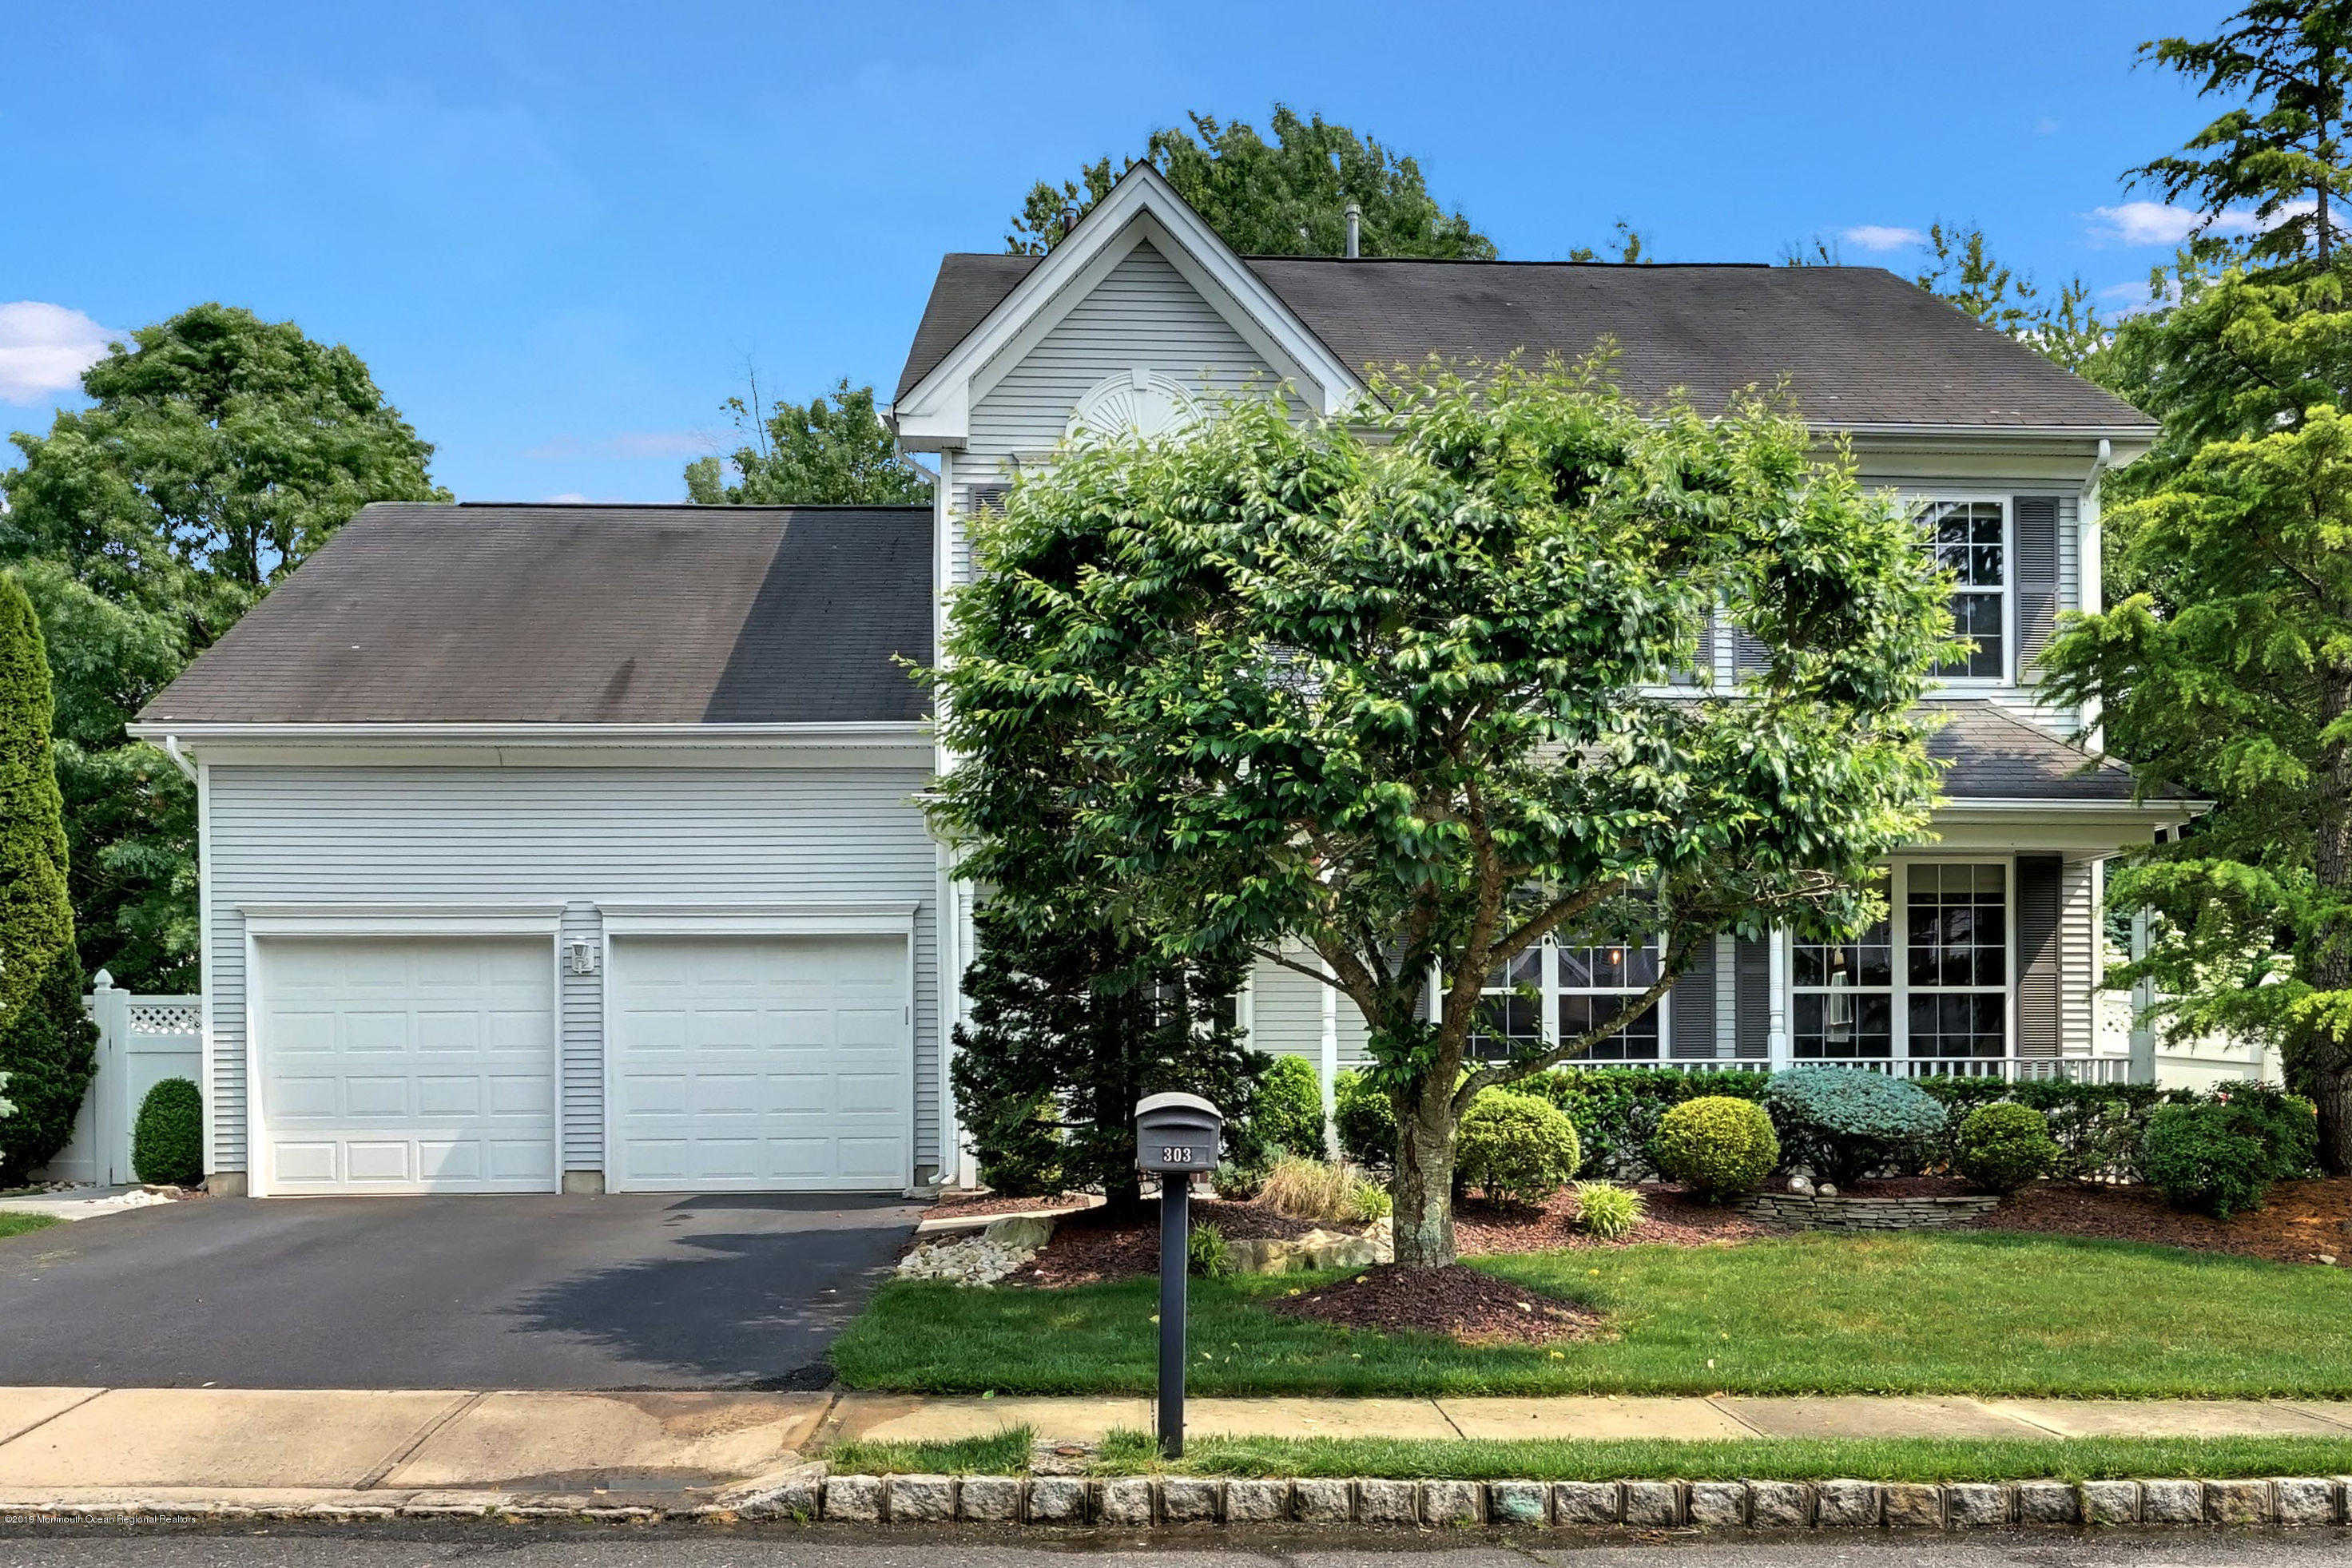 303 Sundew Drive, Morganville, NJ 07751 now has a new price of $579,000!